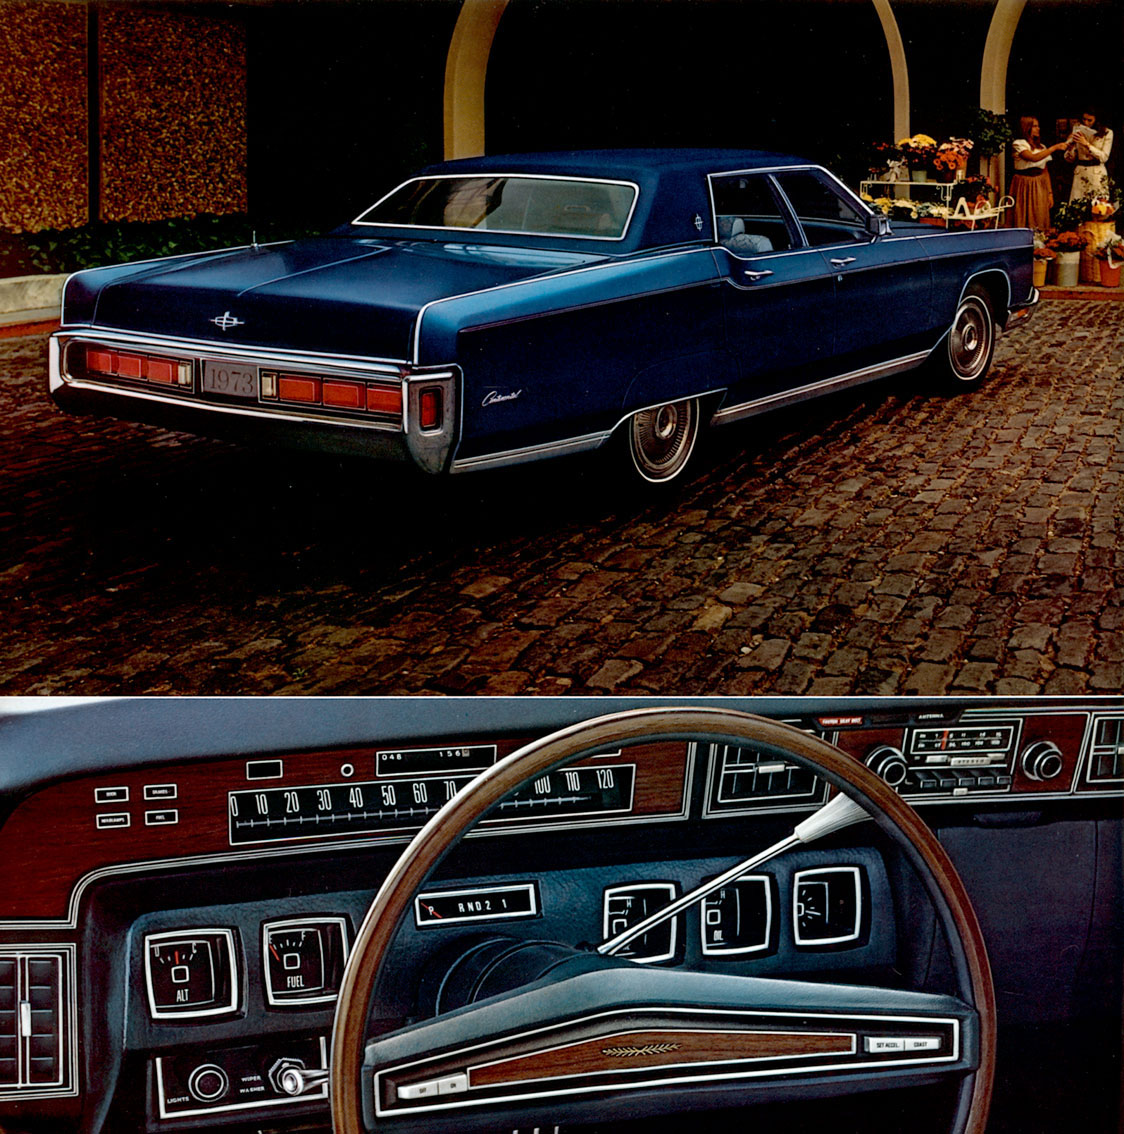 1973: Cadillac, Lincoln, Imperial (Chrysler) (luxury Car